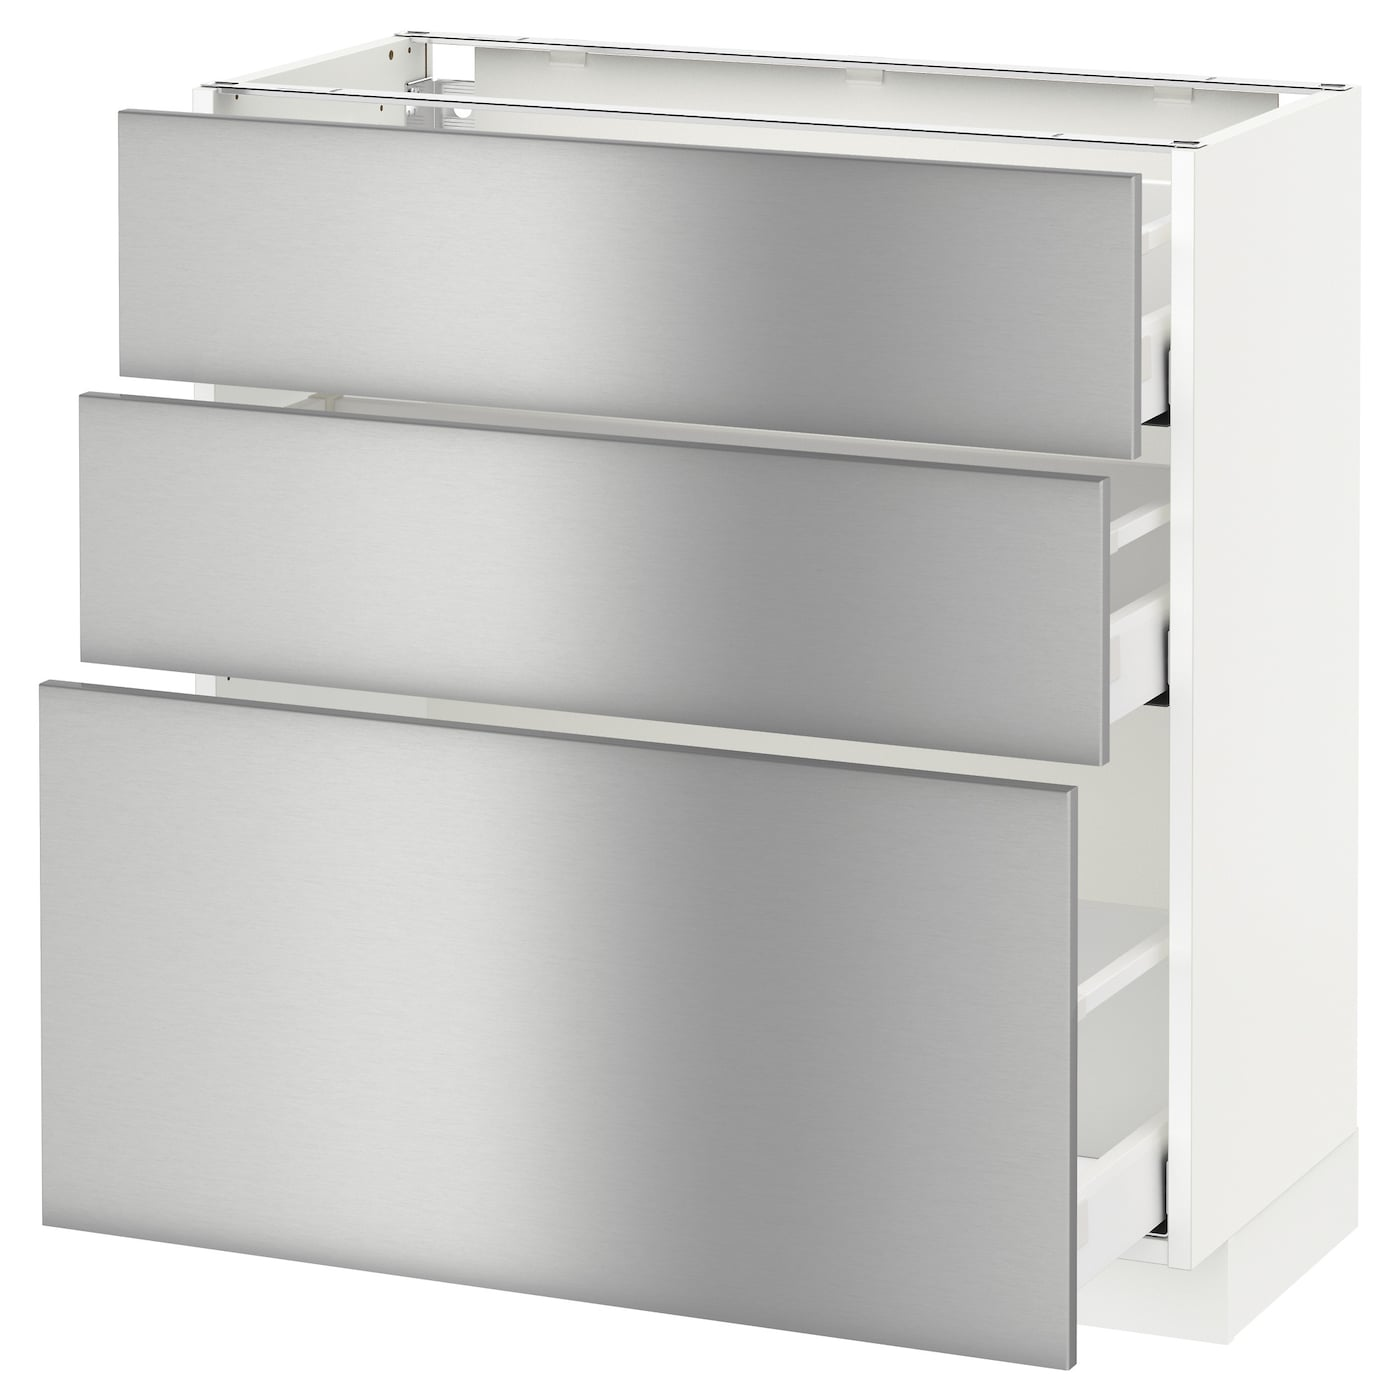 Metod maximera base cabinet with 3 drawers white grevsta Metal kitchen cabinets